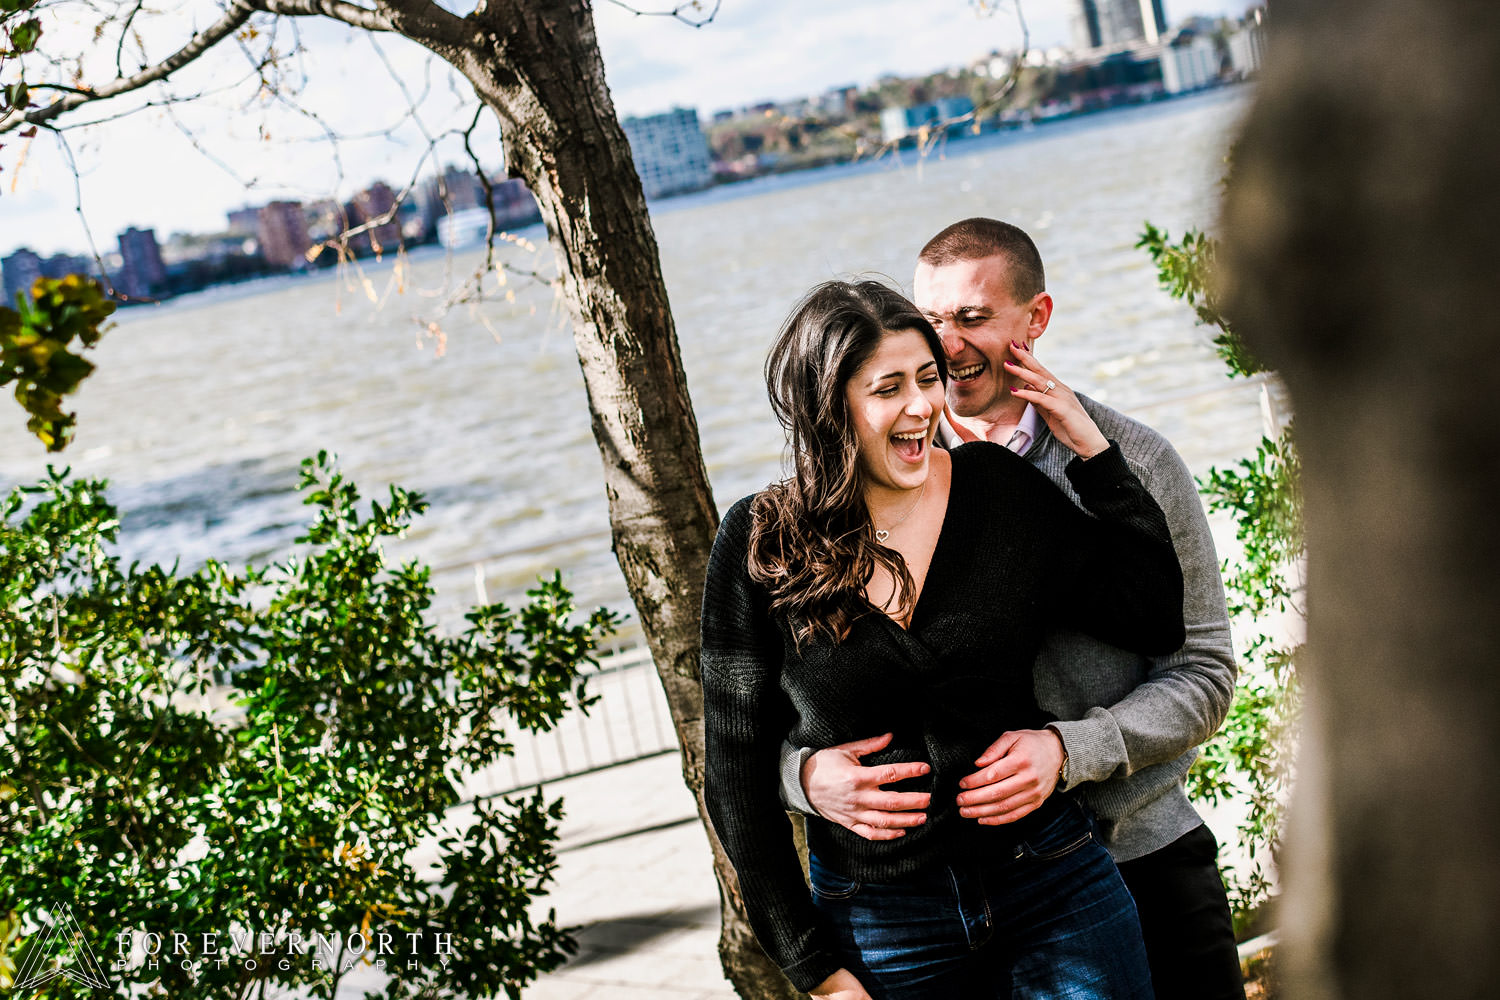 Cainero-Hudson-River-Park-Pier-62-New-York-Proposal-Engagement-Photographer-07.JPG